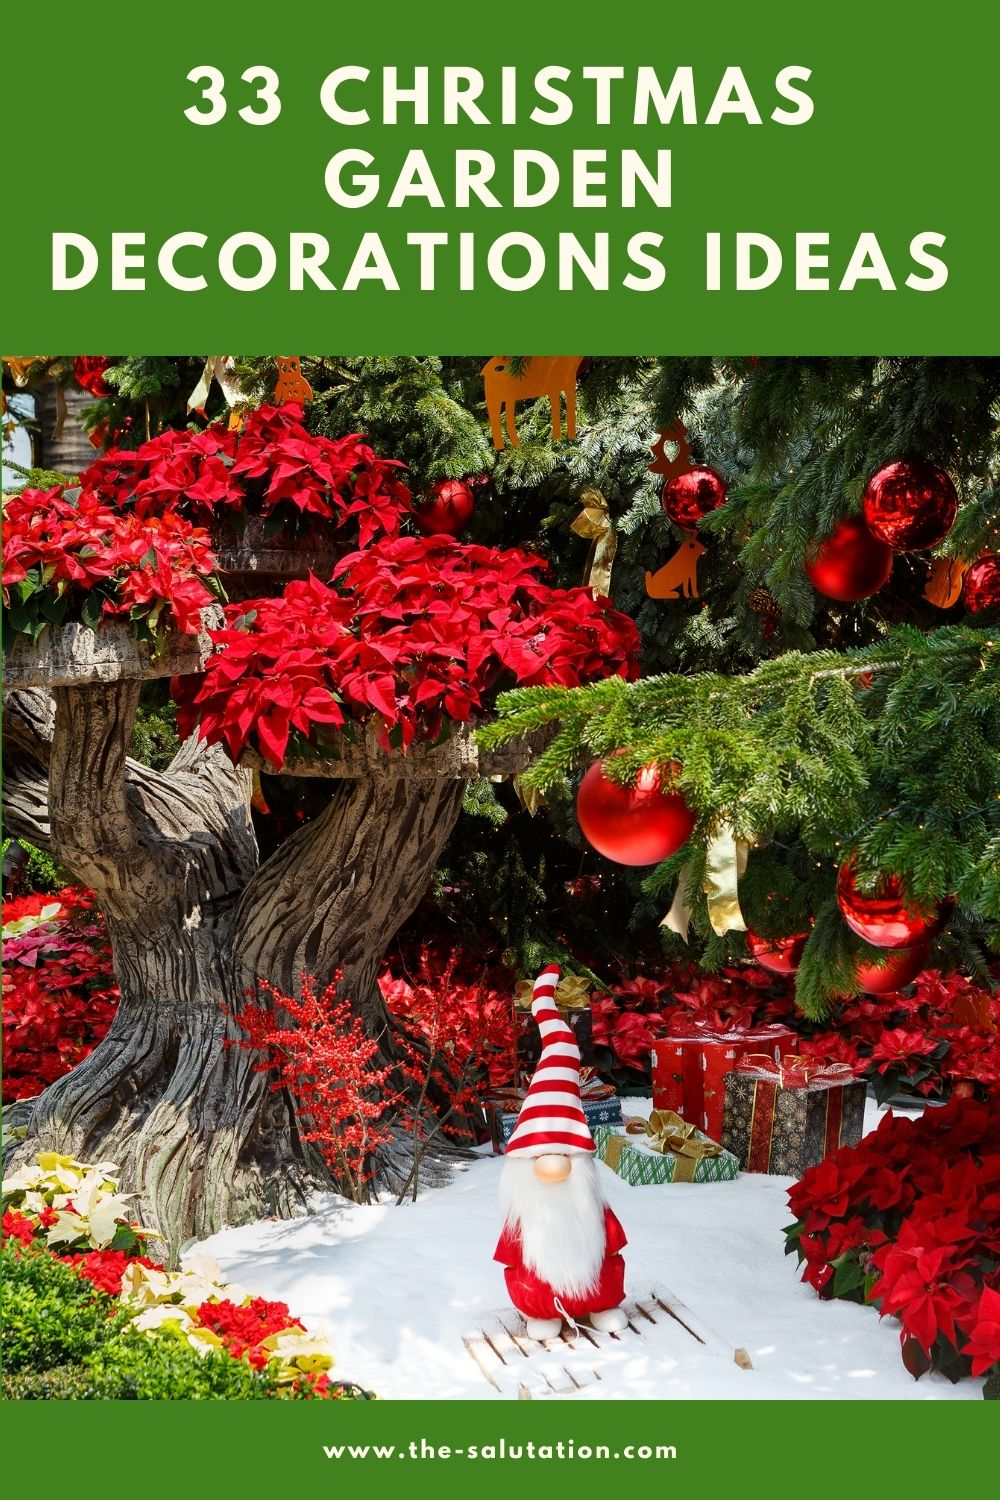 33 Christmas Garden Decorations Ideas 2